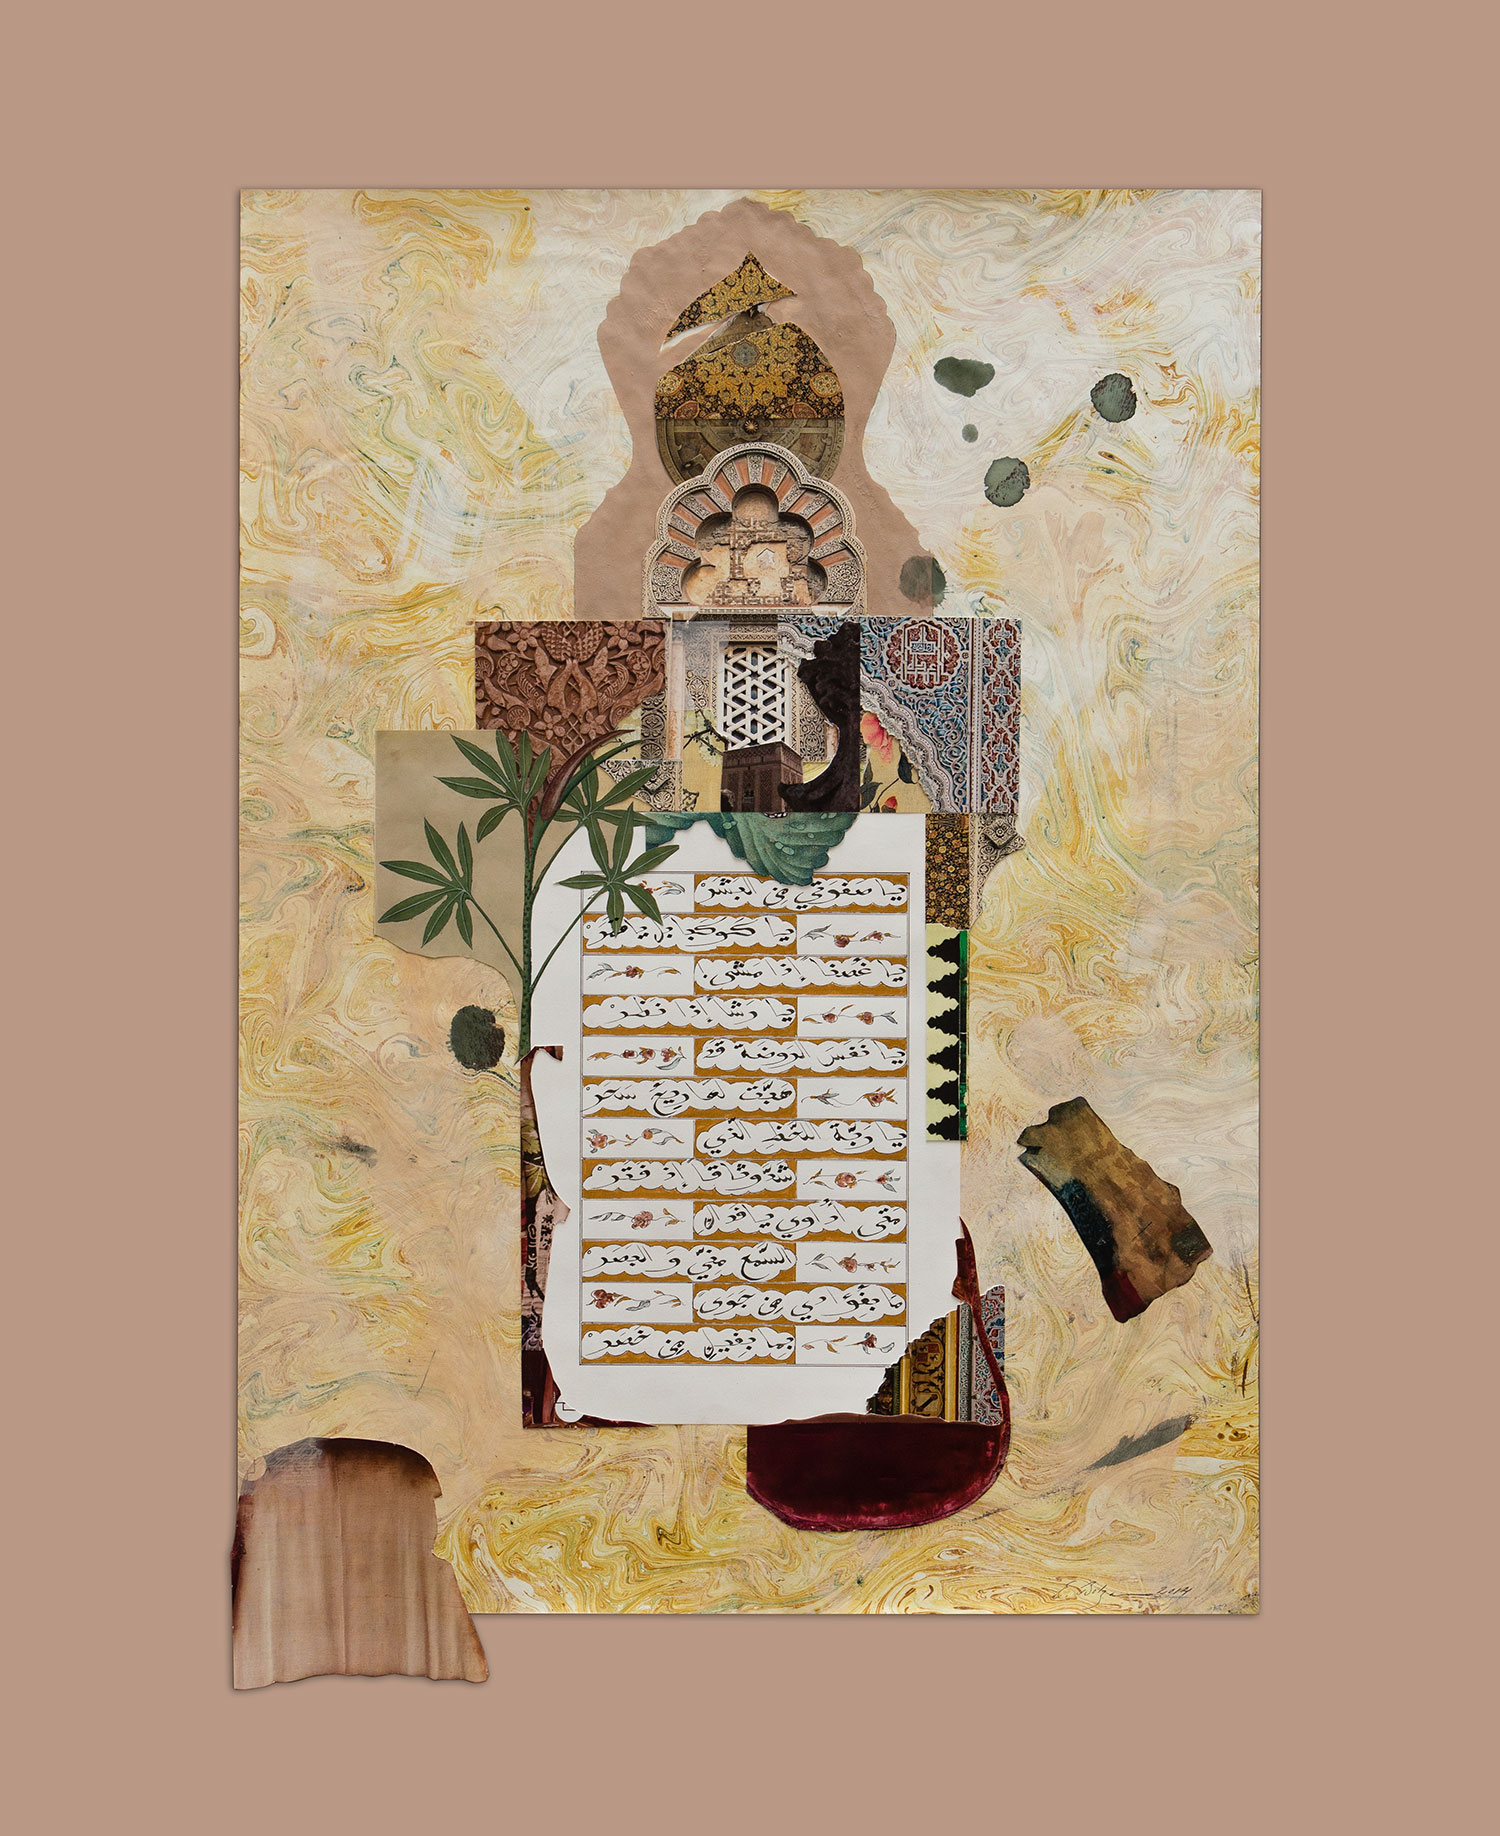 The Beloved (Reflections on The Poet King)  Paper, Iranian ink, gold, watercolour, gesso and tempera on hand dyed and painted paper 101 x 81.5 cm 2014